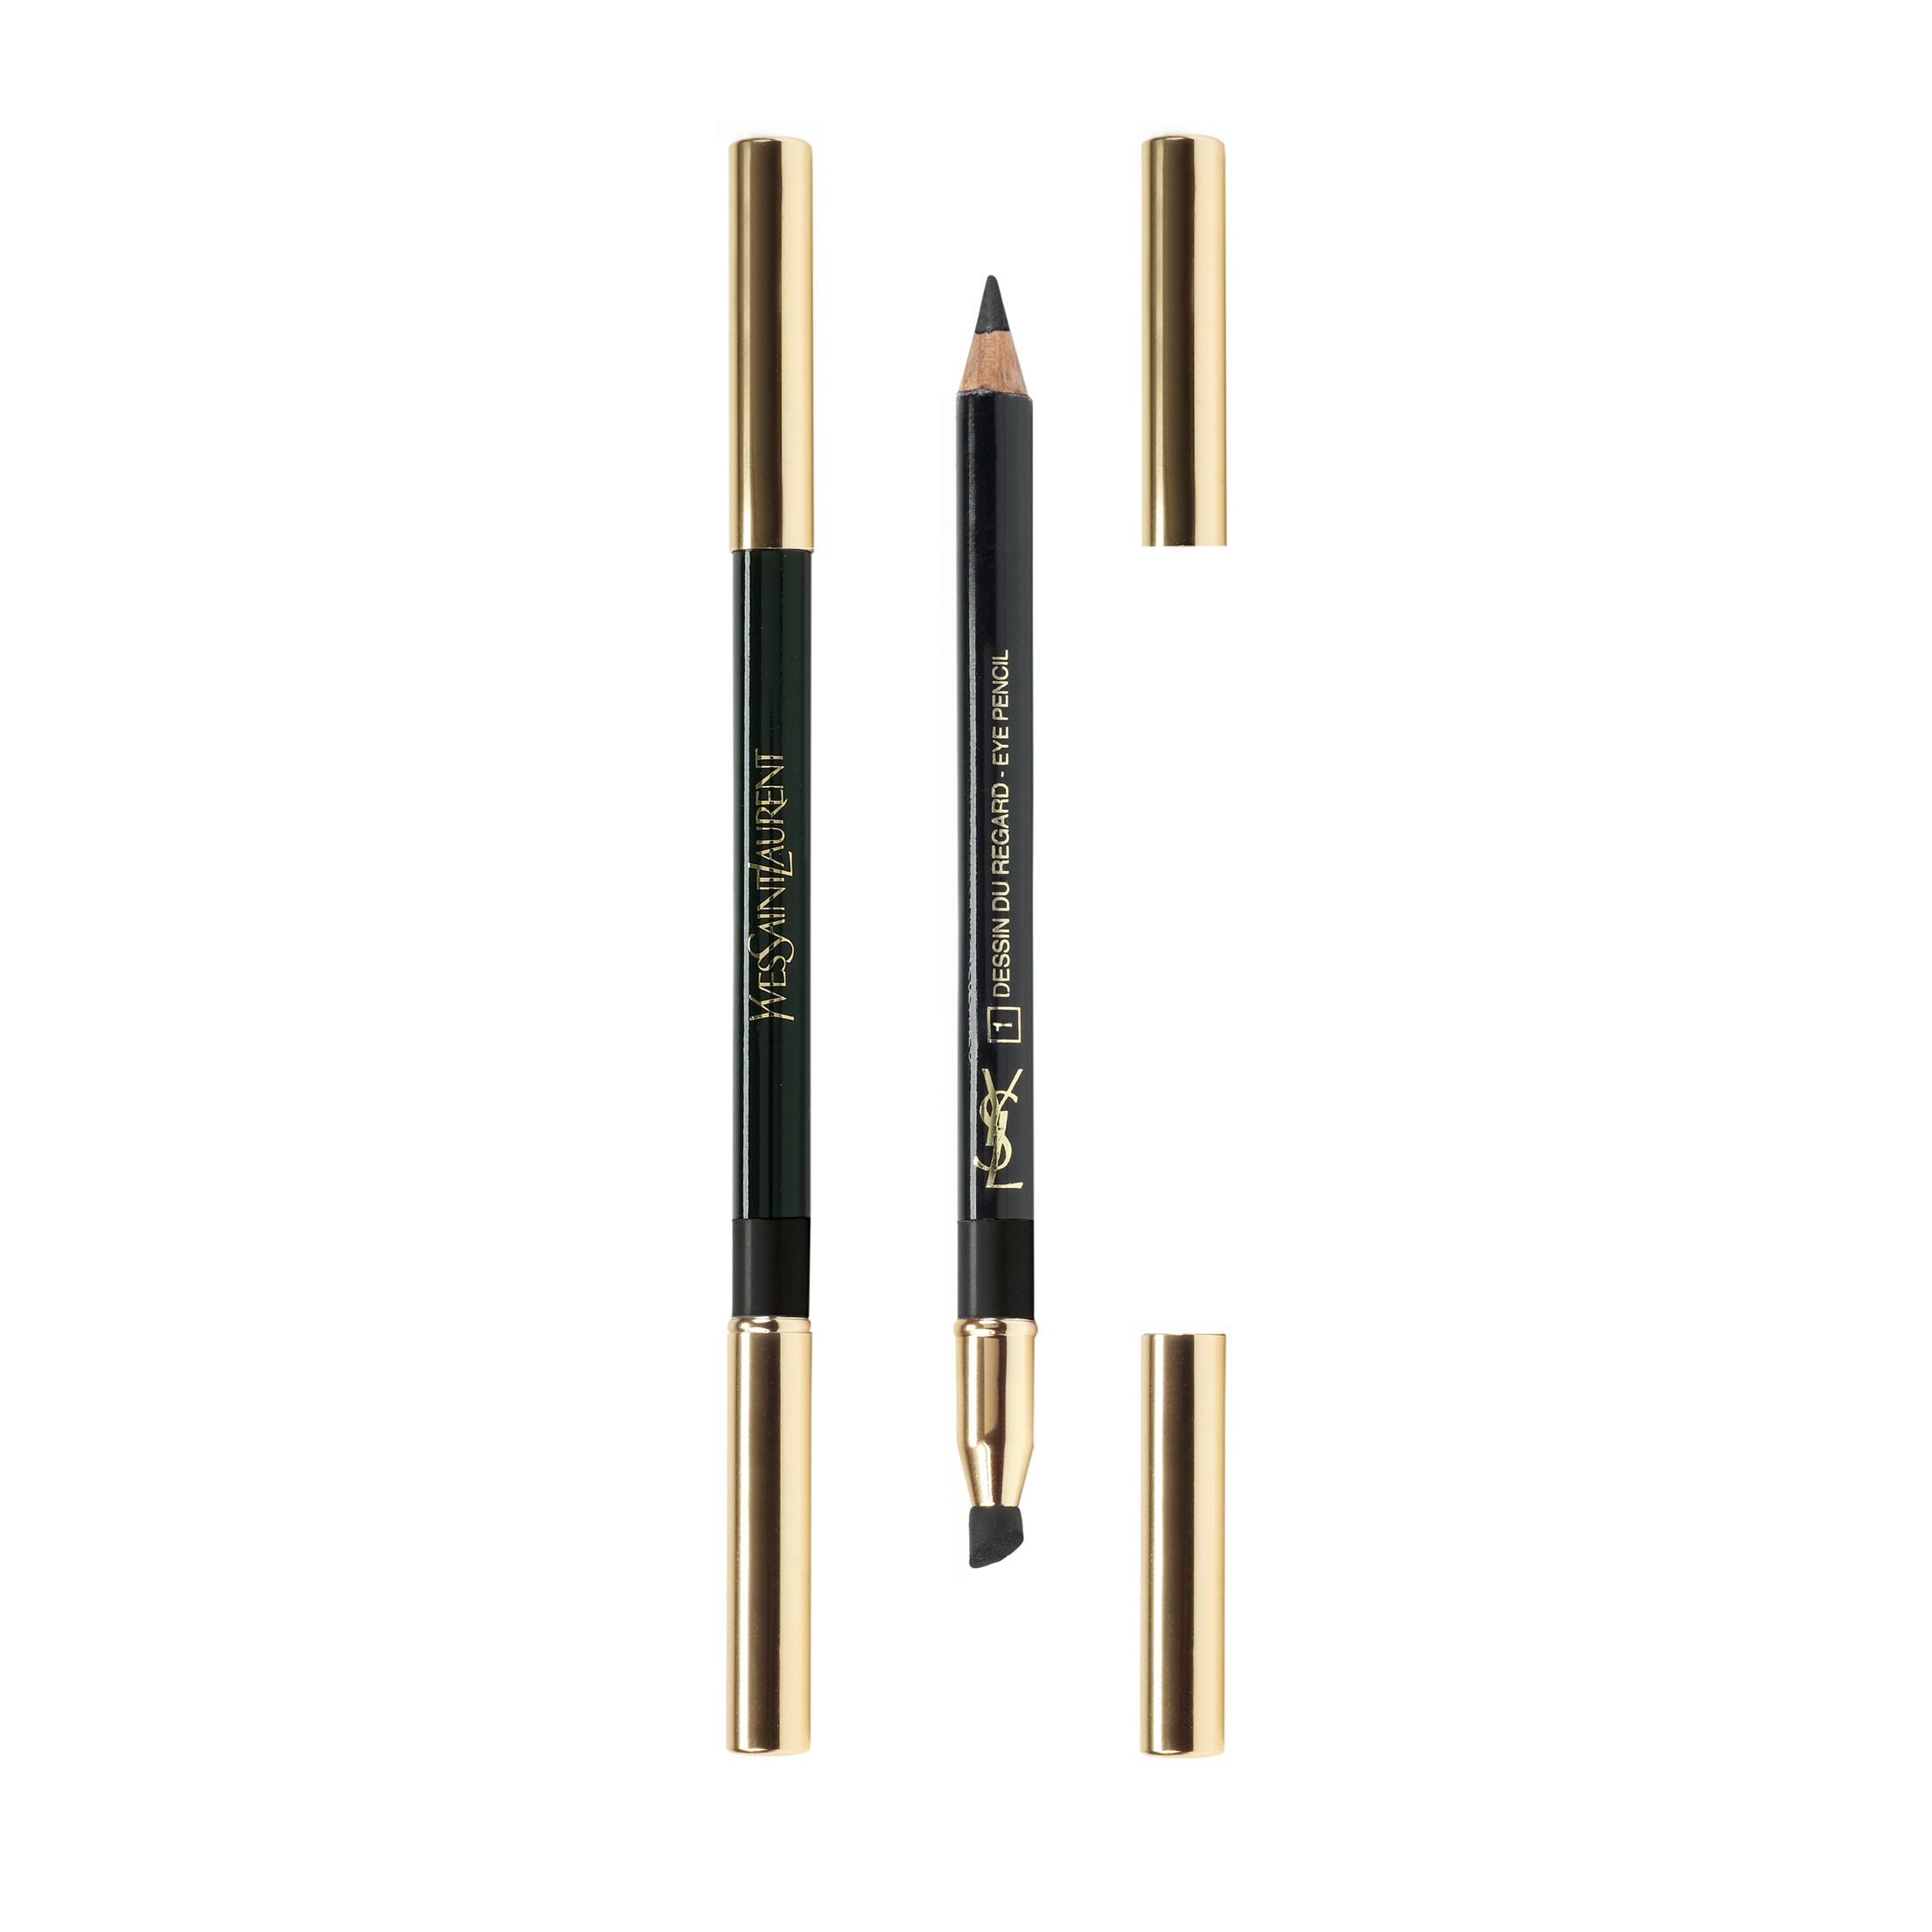 Dessin Du Regard Long-Lasting Eye Pencil